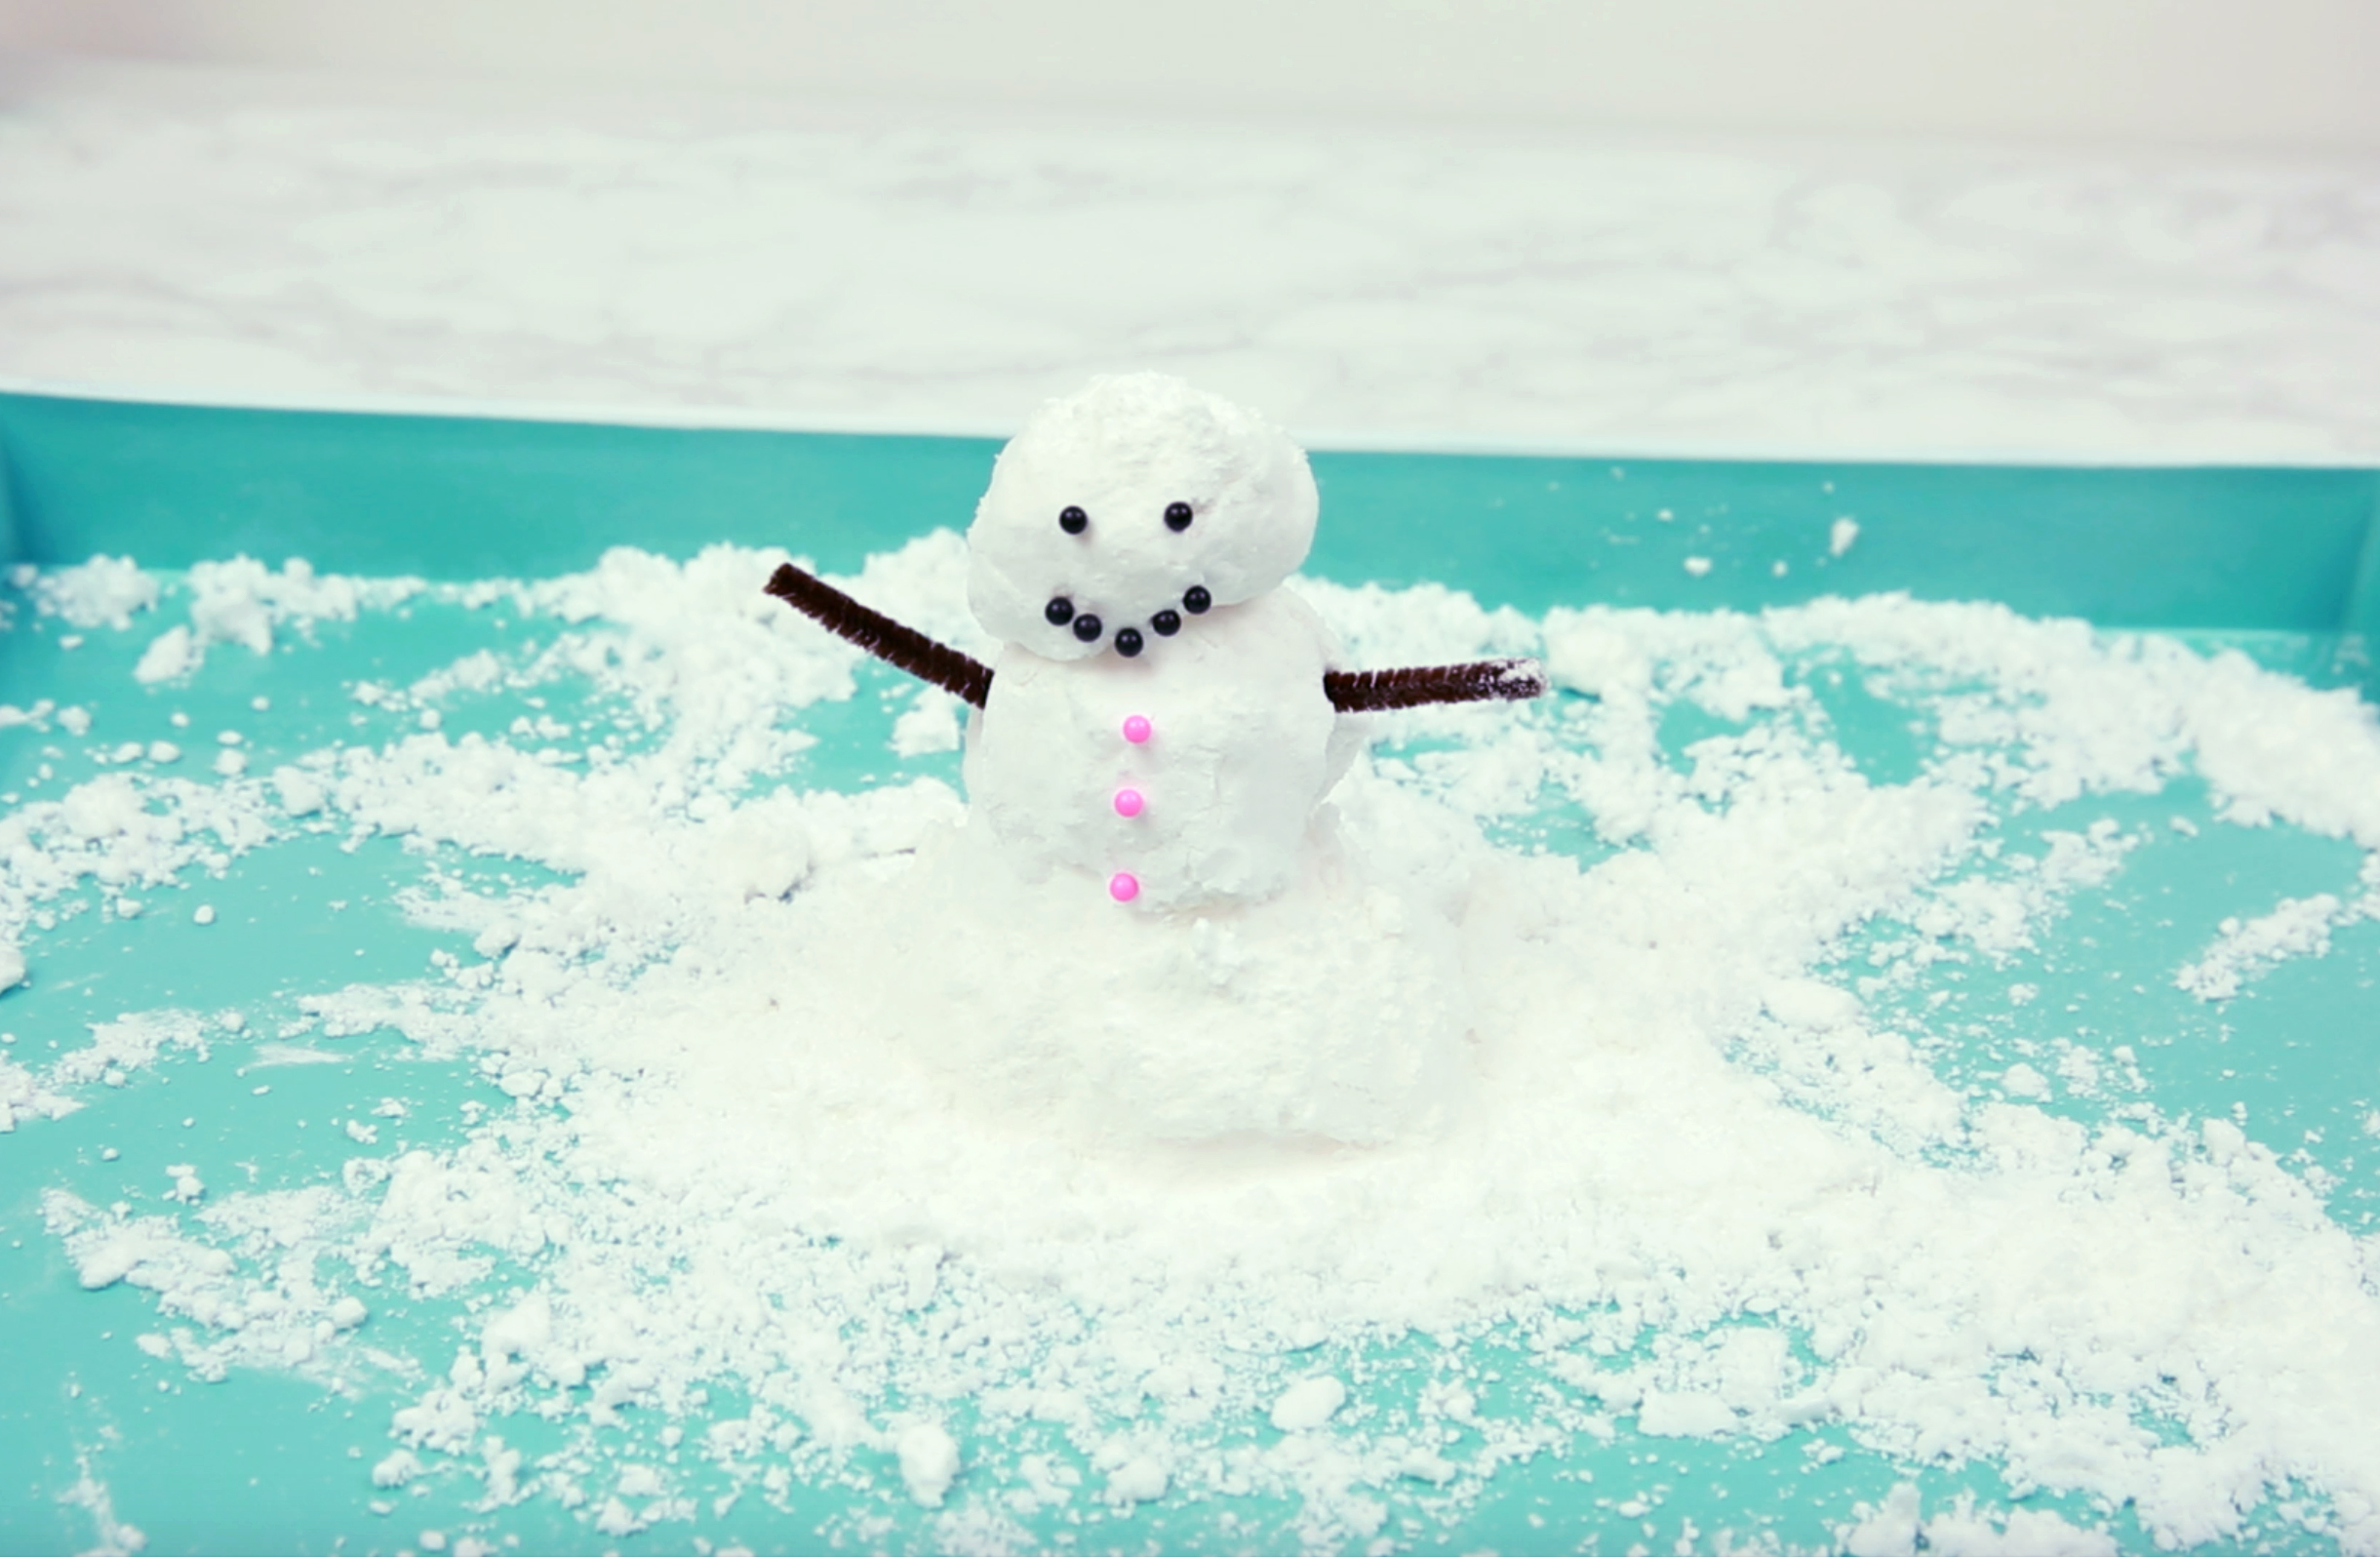 DIY fake snow is the new slime, and it's *so* satisfying to watch